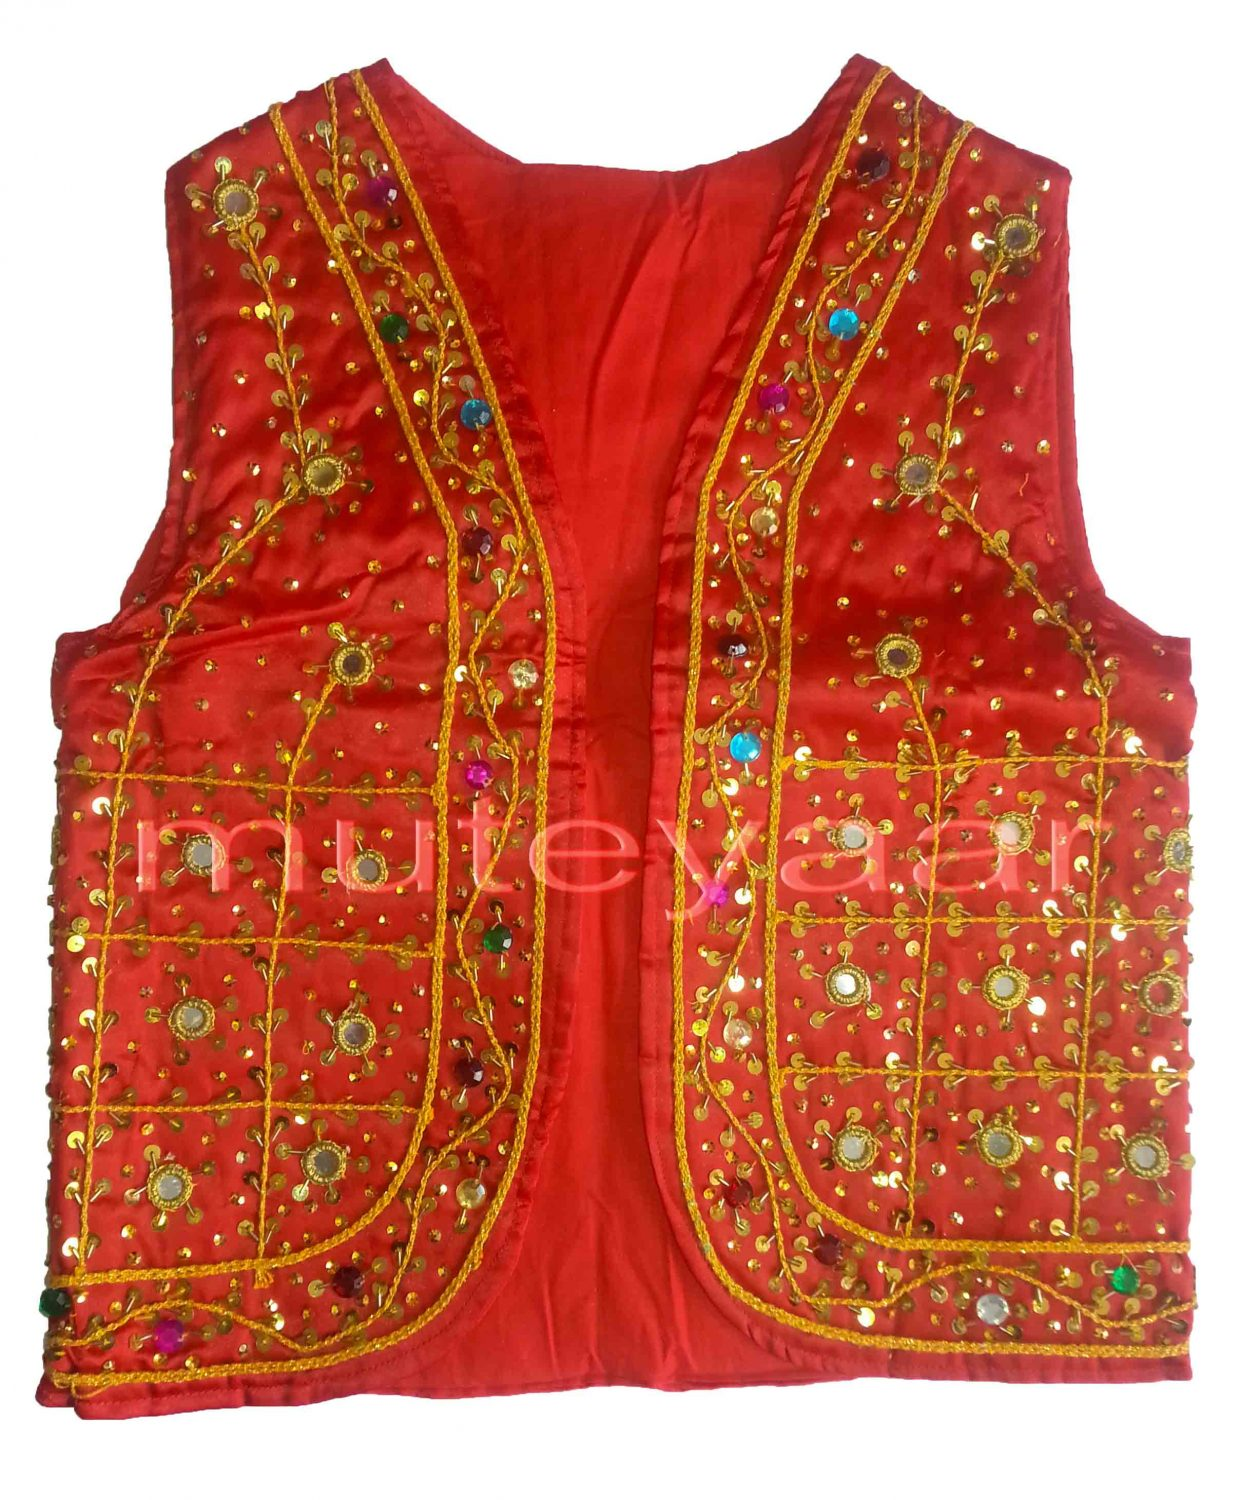 Embroidered RED VEST for  Bhangra dance costume  / outfit 1